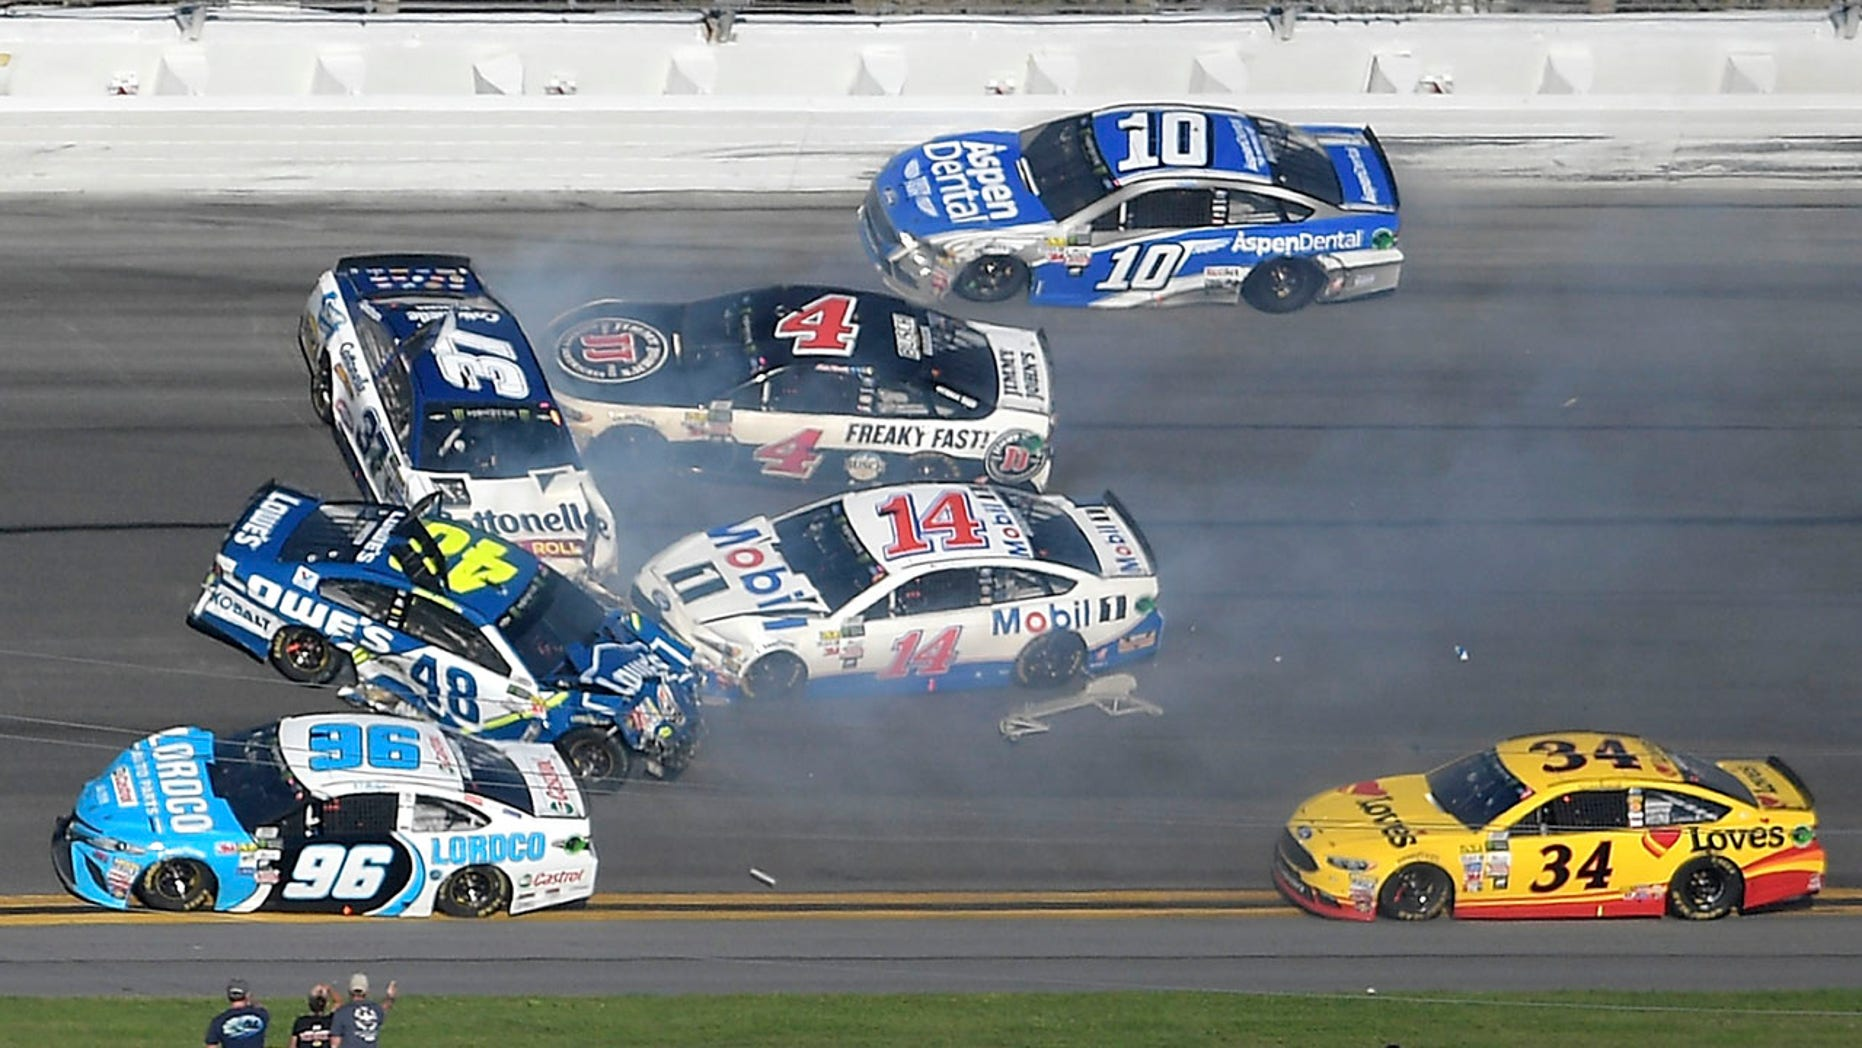 Feb. 26, 2017: Jimmie Johnson (48), Clint Bowyer (14), Chris Buescher (37), Kevin Harvick (4), D.J. Kennington (96) and Danica Patrick (10) collide in a multi-car wreck between Turns 3 and 4, as Landon Cassill (34) drives past.